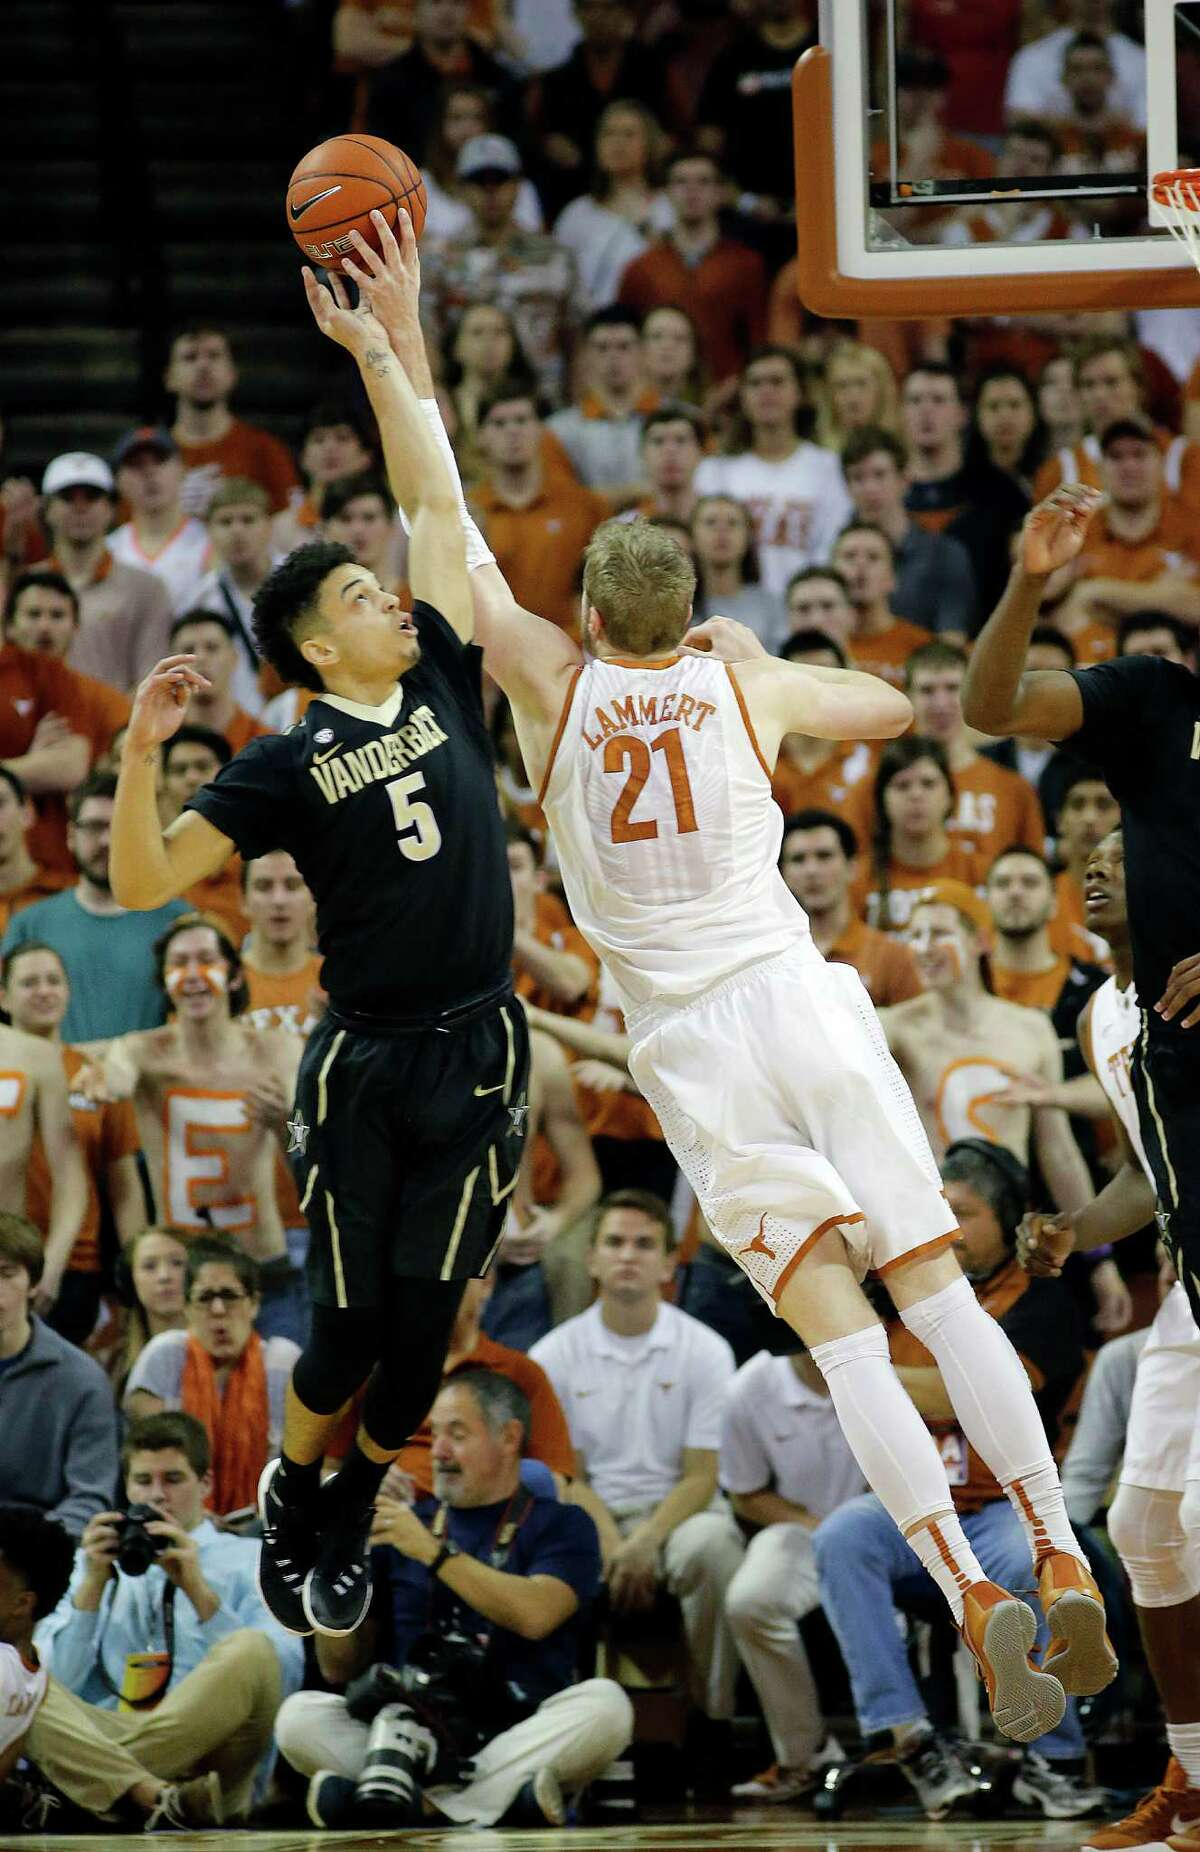 AUSTIN, TX - JANUARY 30: Matthew Fisher-Davis #5 of the Vanderbilt Commodores and Connor Lammert #21 of the Texas Longhorns battles for rebound at the Frank Erwin Center on January 30, 2016 in Austin, Texas.